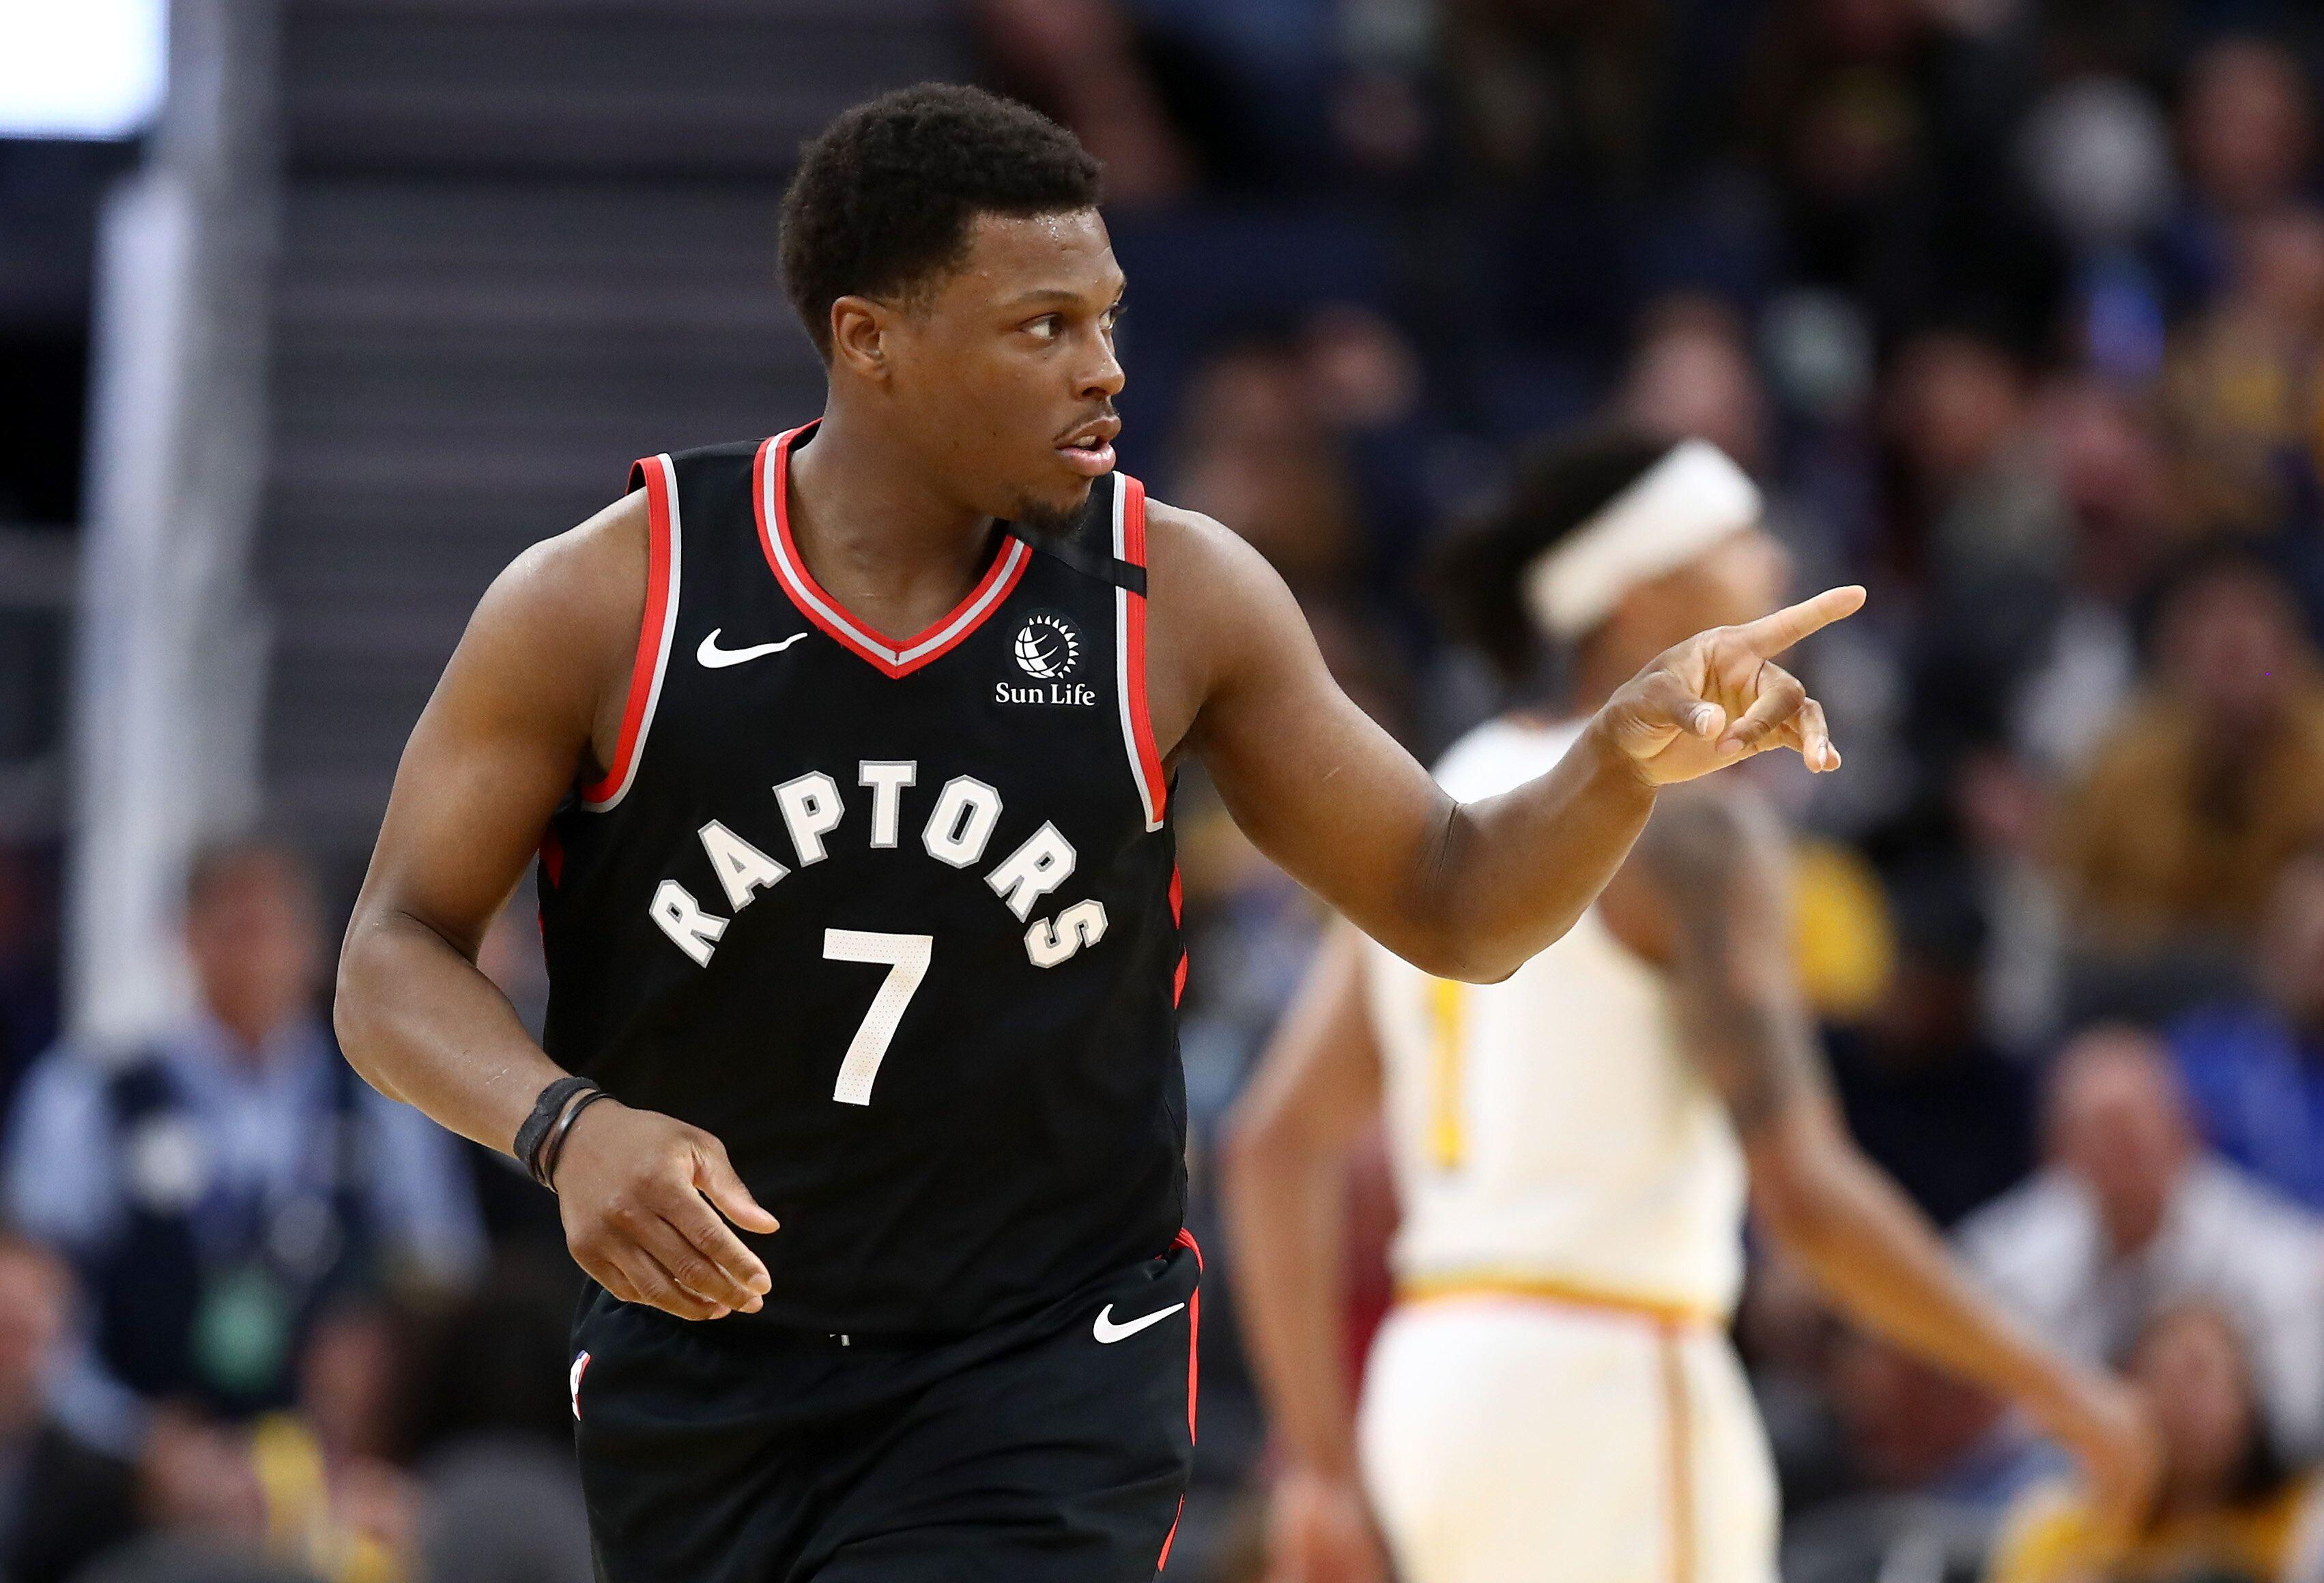 Could The Toronto Raptors Play In Kansas City Next Year? The Mayor Wants It